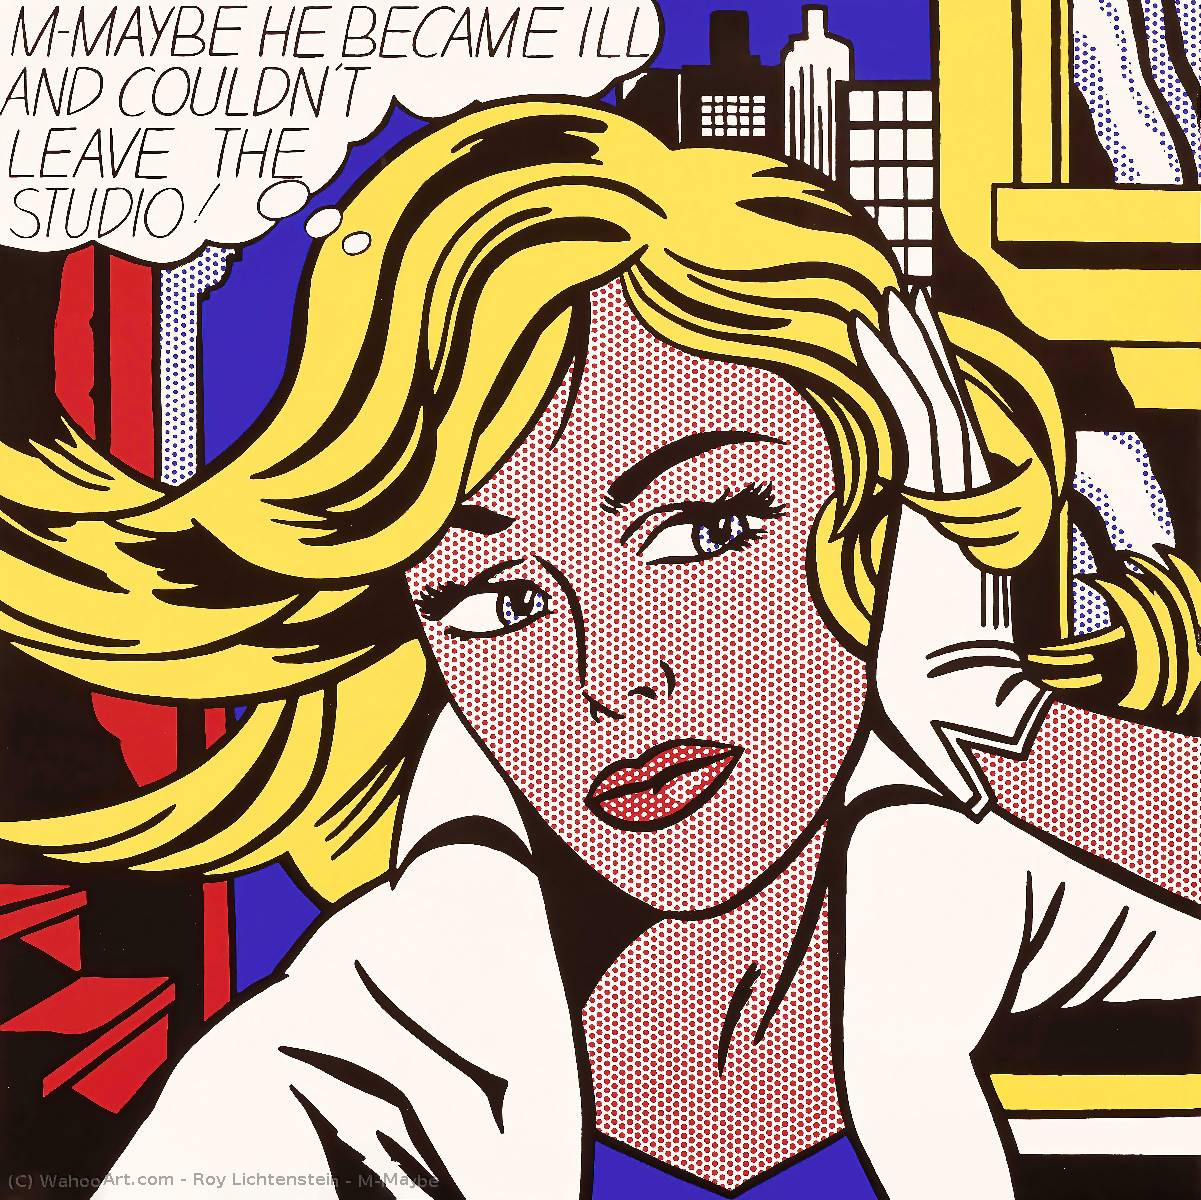 | M-Maybe by Roy Lichtenstein | Most-Famous-Paintings.com